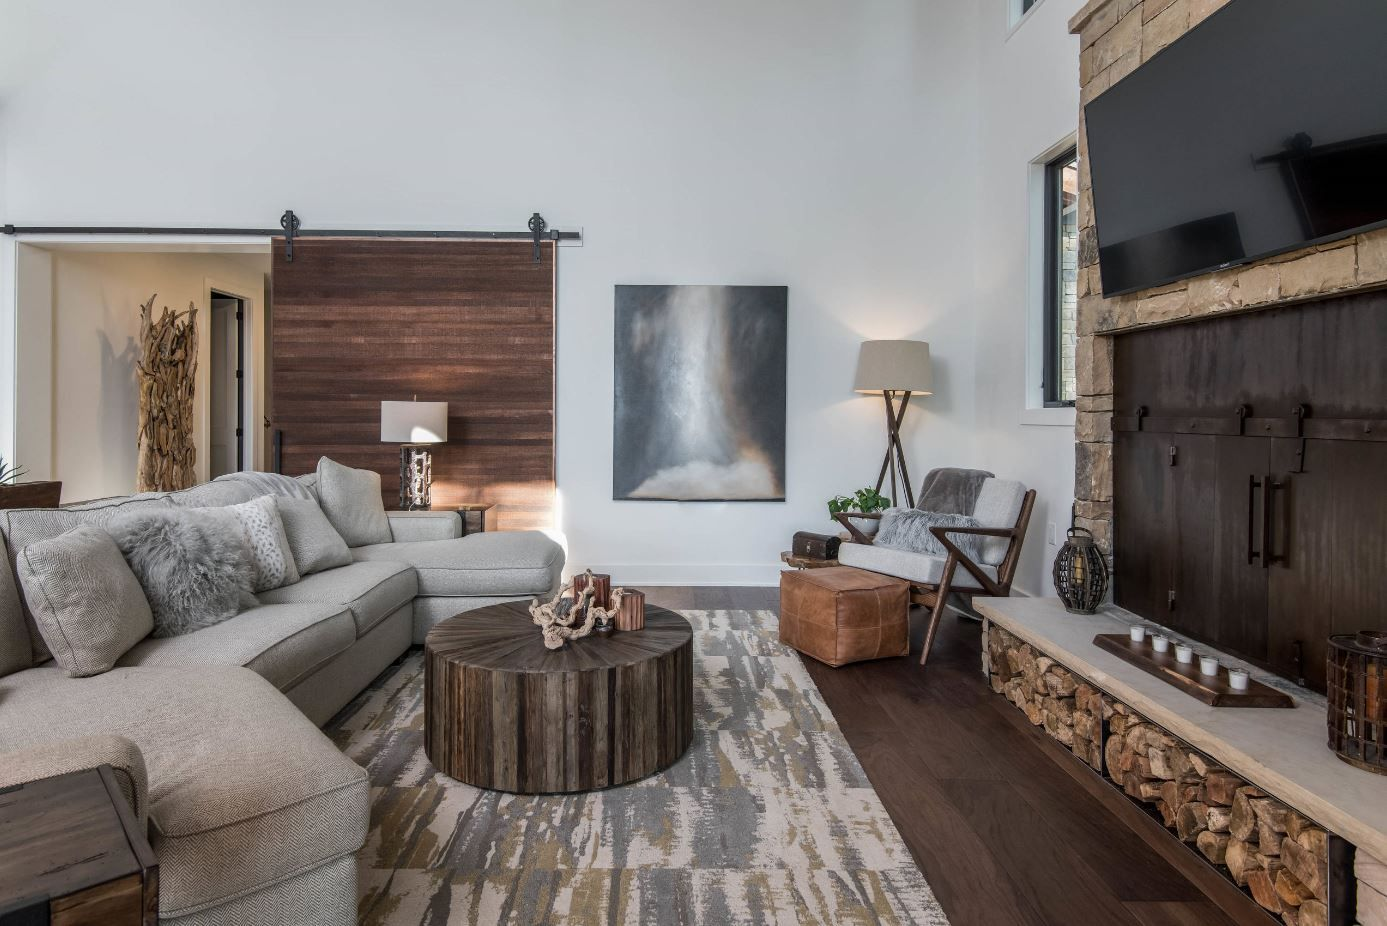 Modern Rustic Interior Design 7 Best Tips To Create Your Flawless